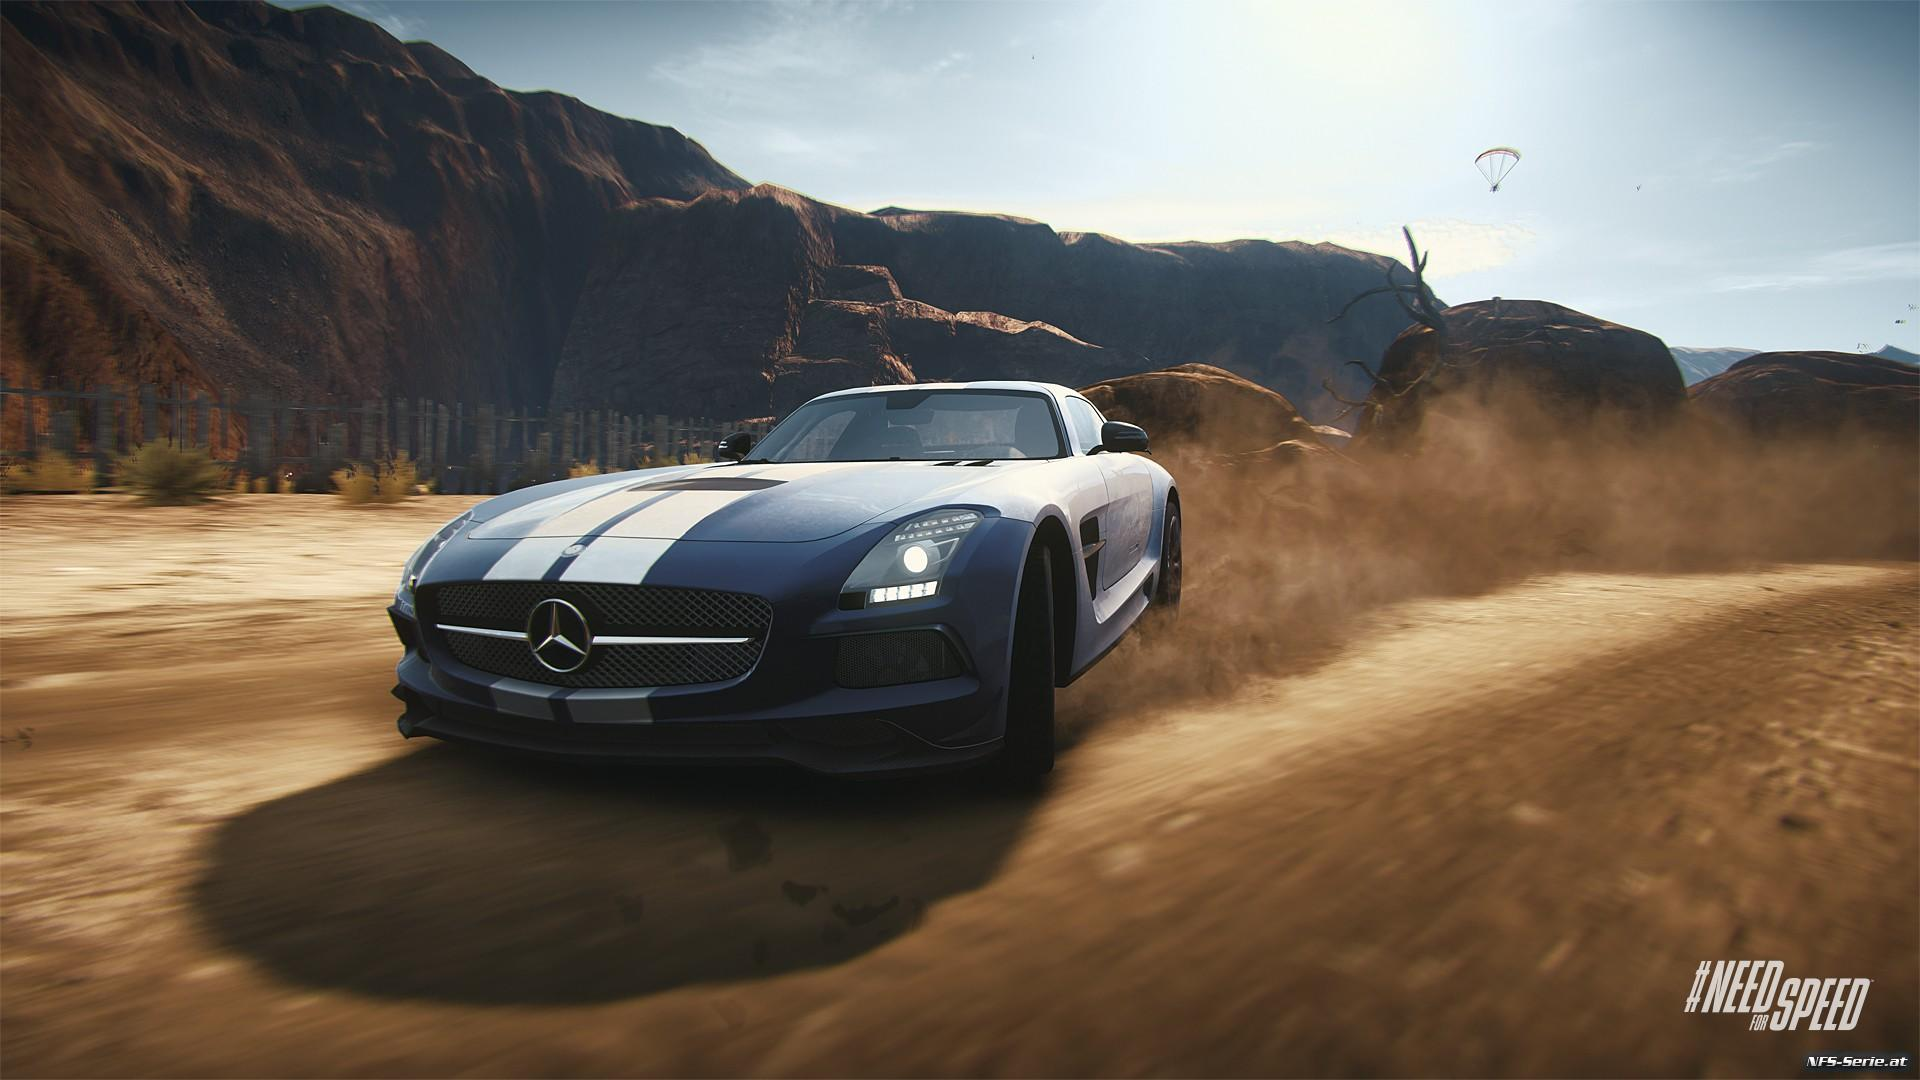 Mercedes Benz SLS AMG Coupe Black Series Full HD Wallpaper And